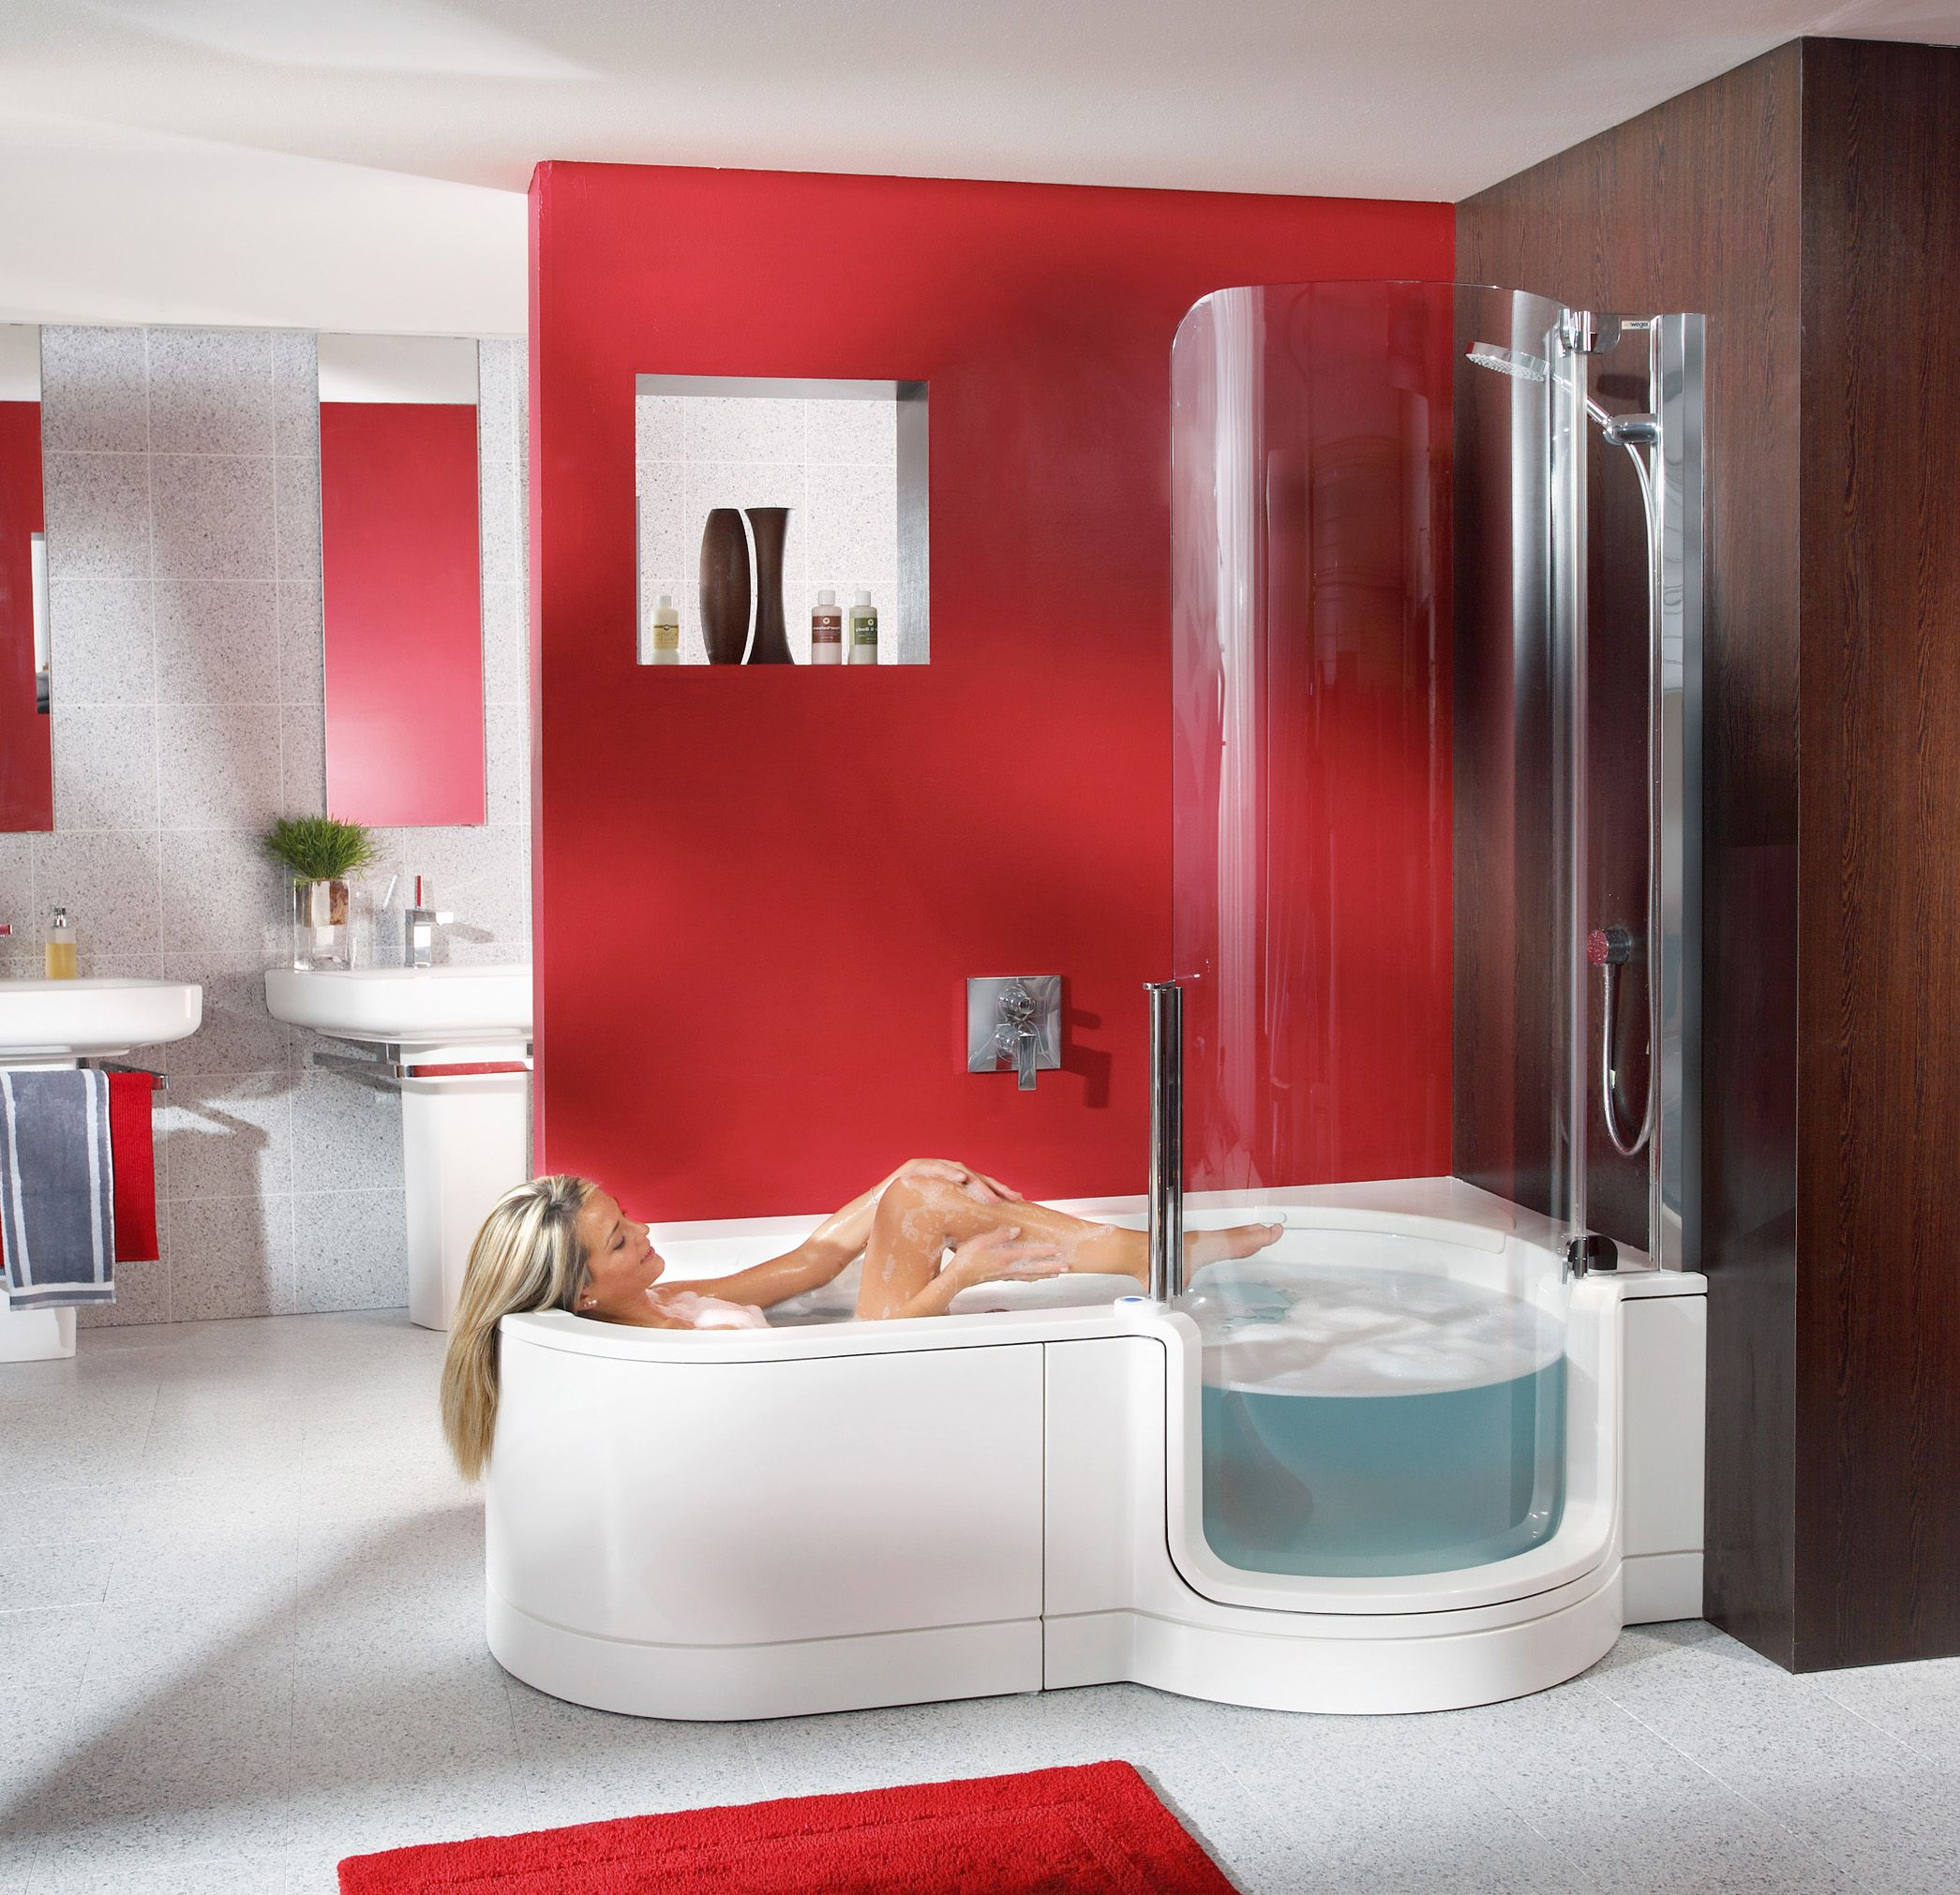 Badezimmer Garnitur Rot Barrierefreie Badewanne And Dusche Von Artweger Bad And Wellness